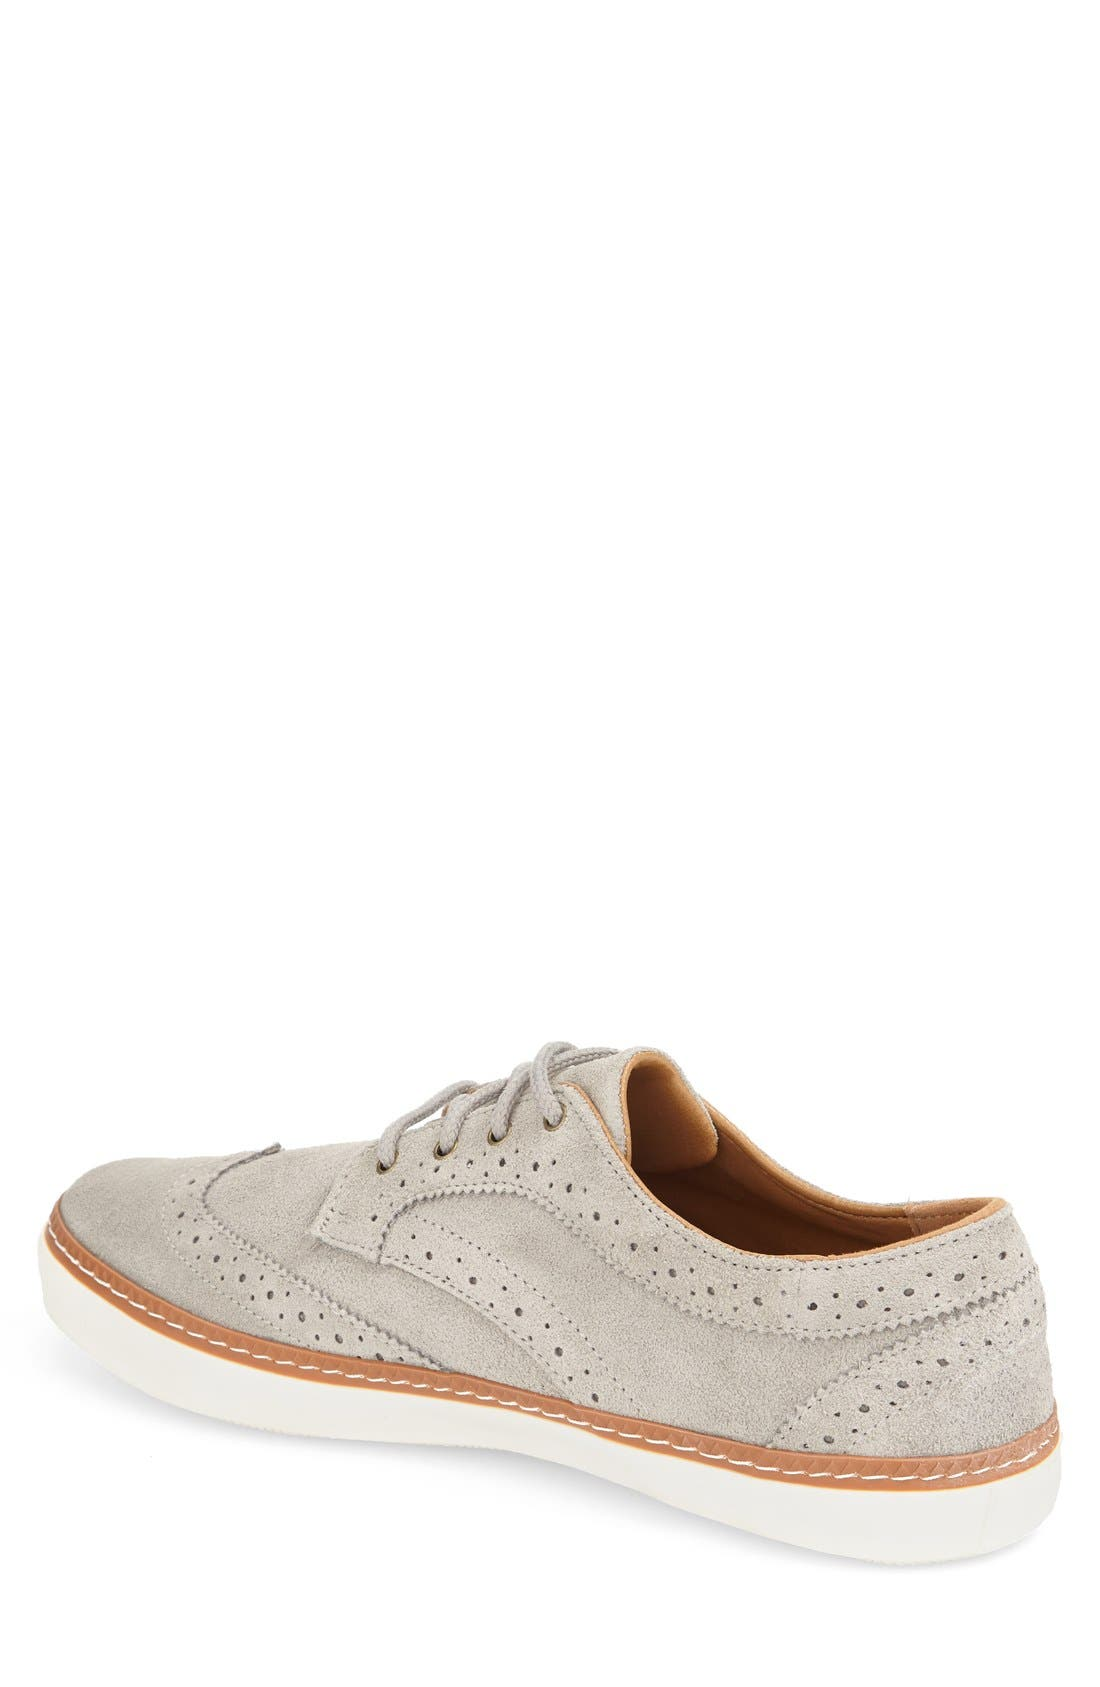 'Novello' Wingtip Sneaker,                             Alternate thumbnail 5, color,